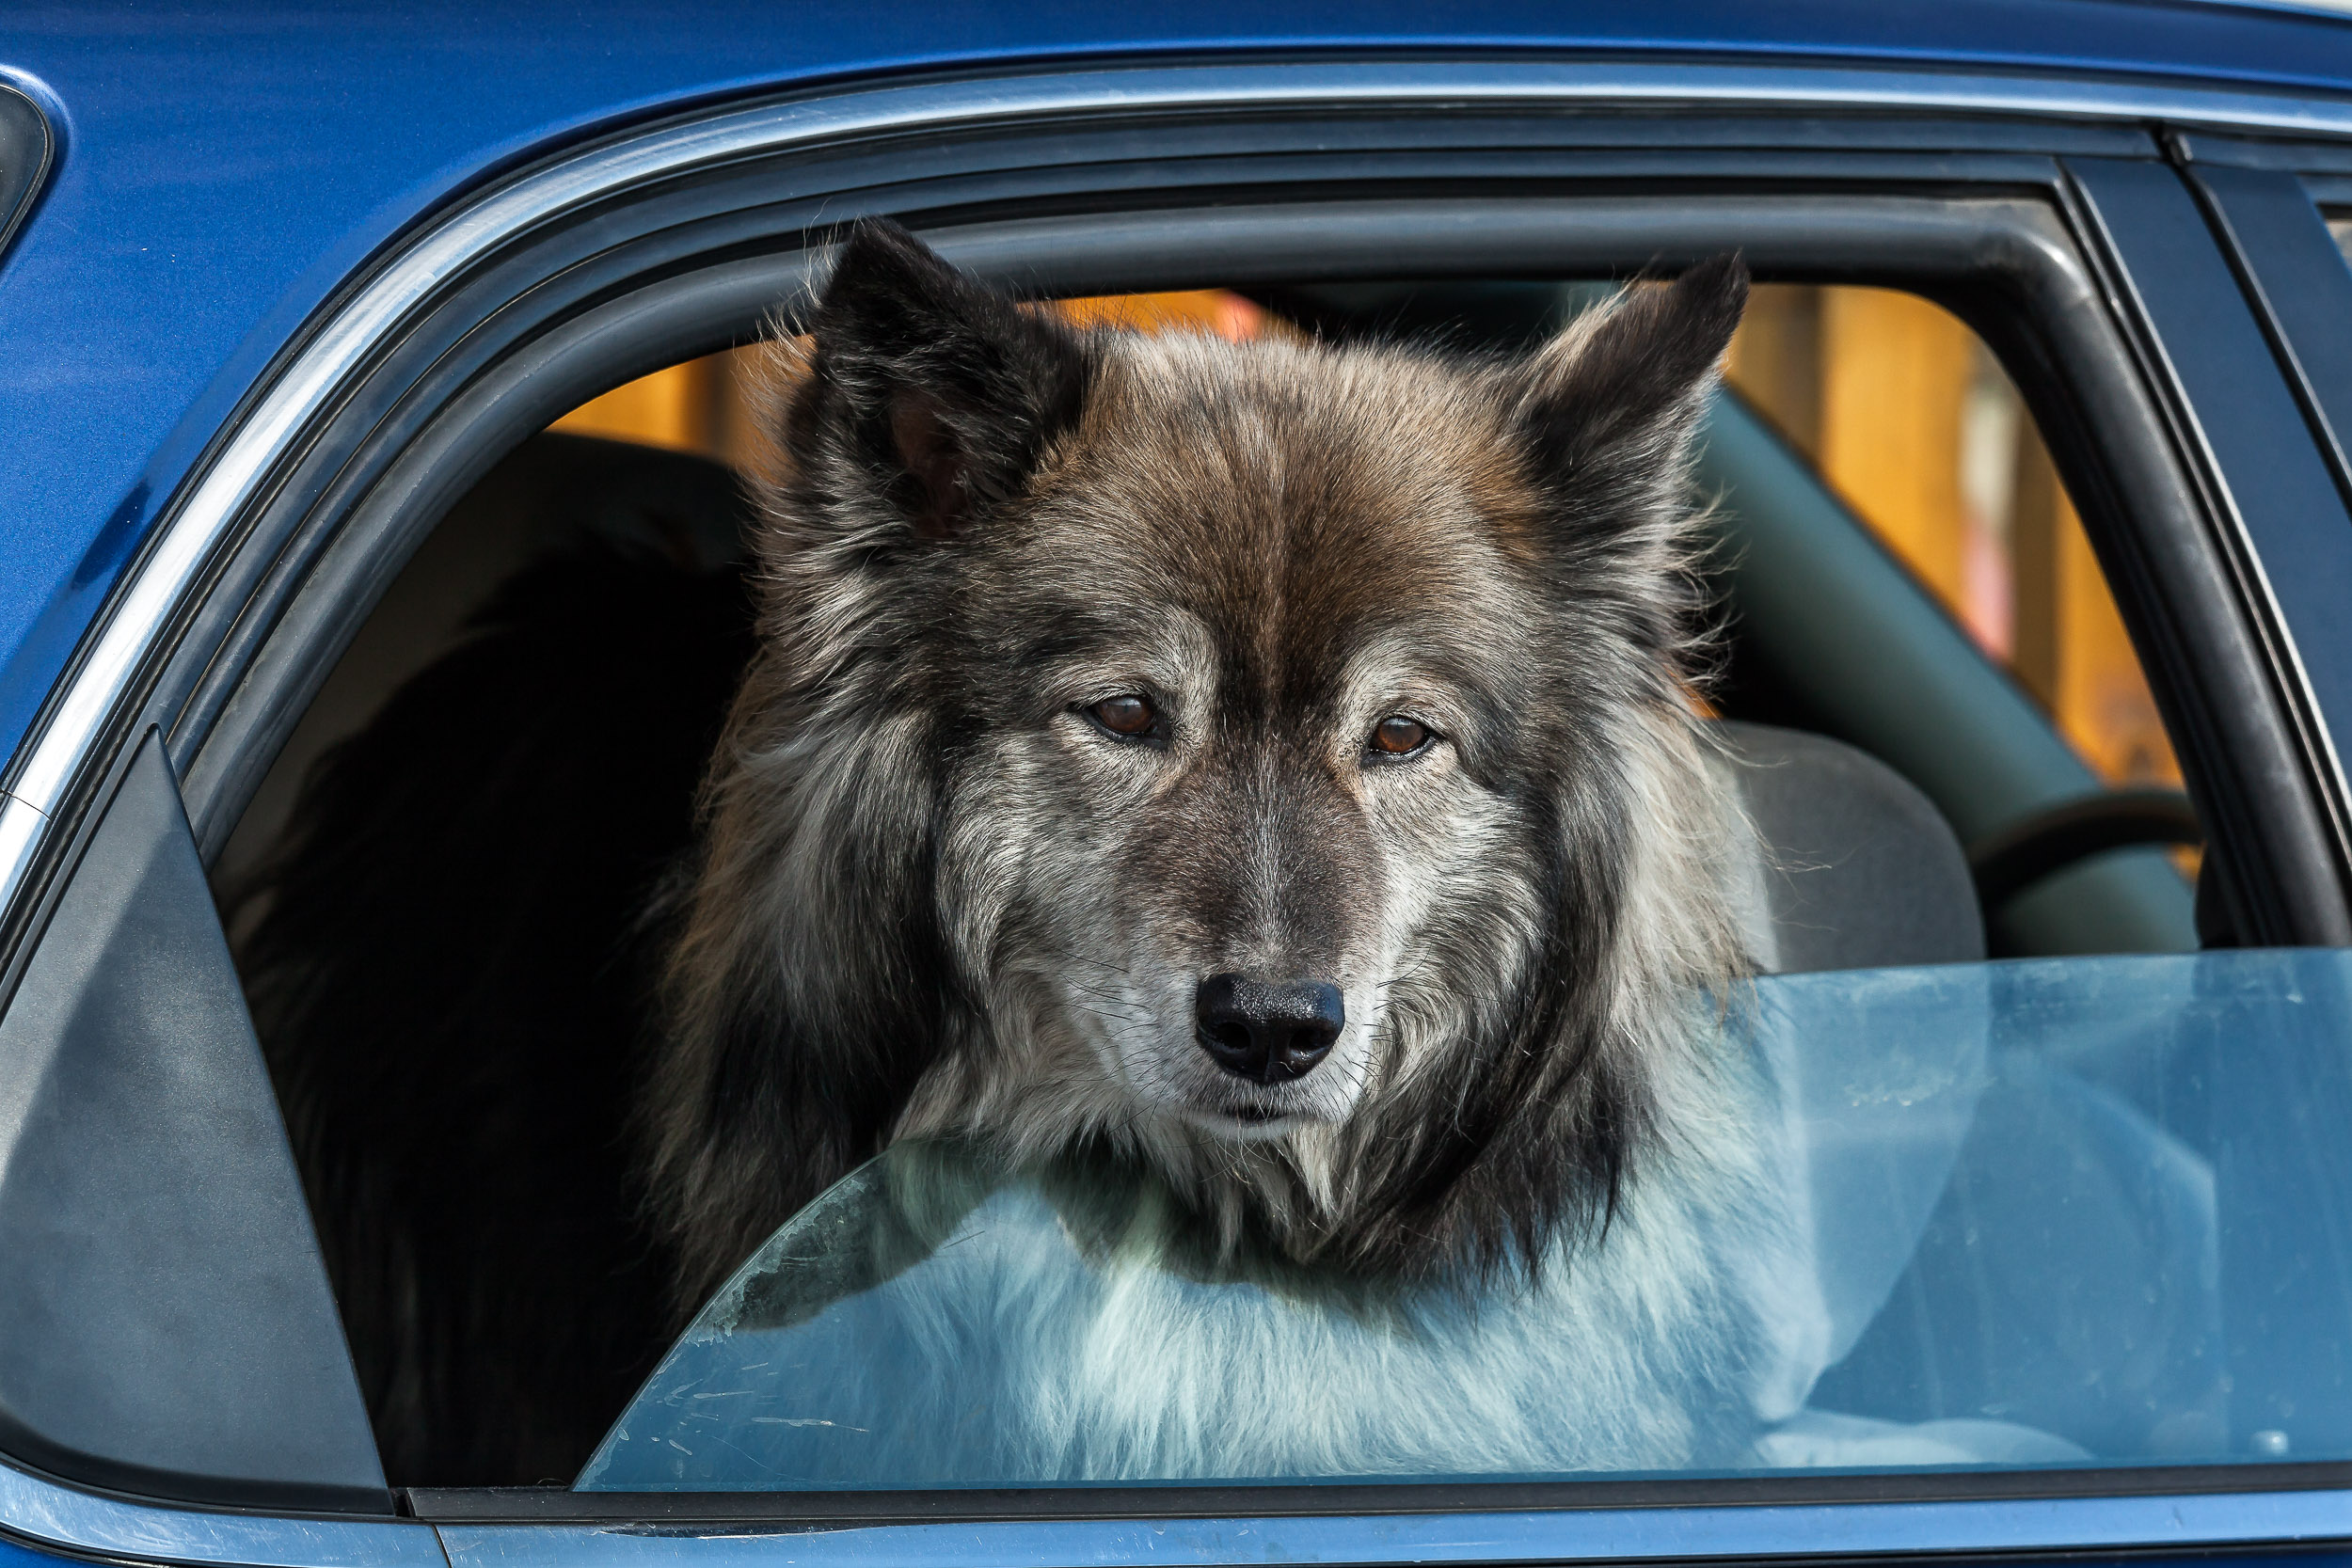 A  calm and friendly dog  pokes his head through a car window to greet passers by in the seaside town of  Húsavik  in  Northern Iceland .